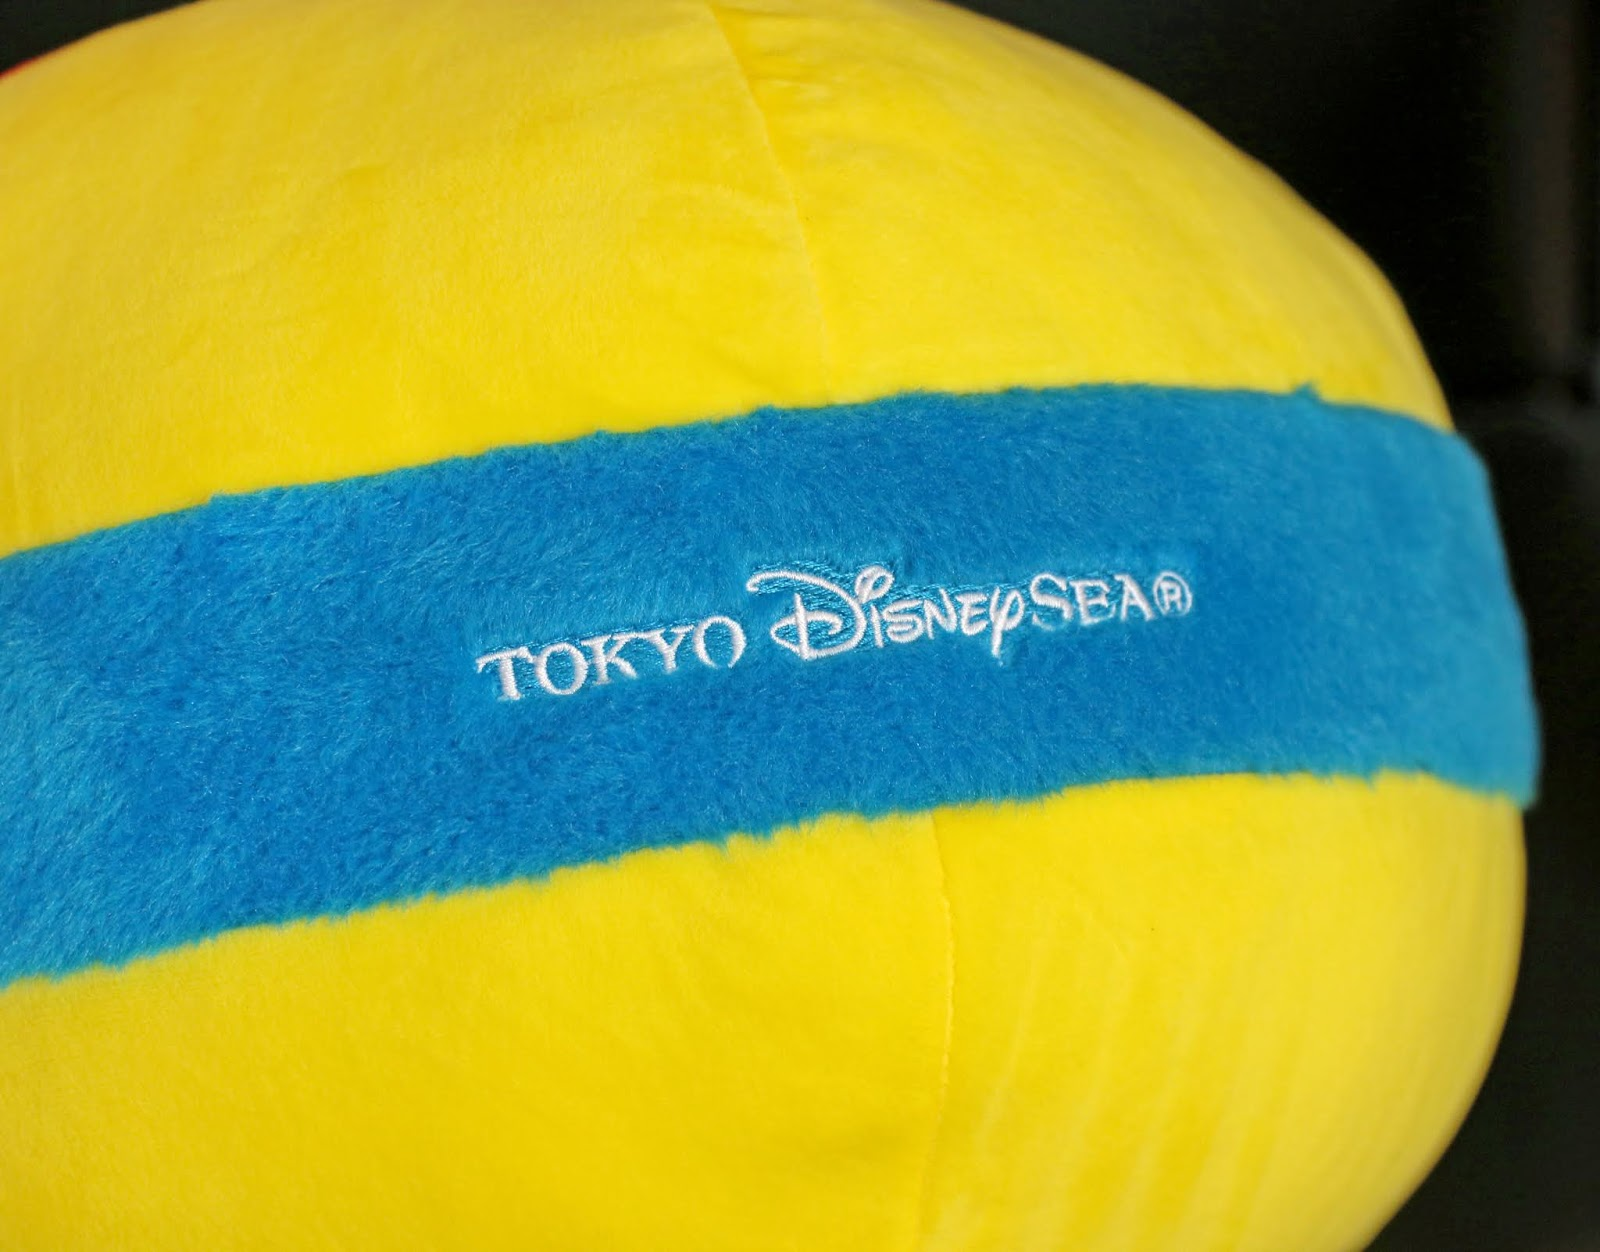 pixar ball cushion pillow disney tokyo sea